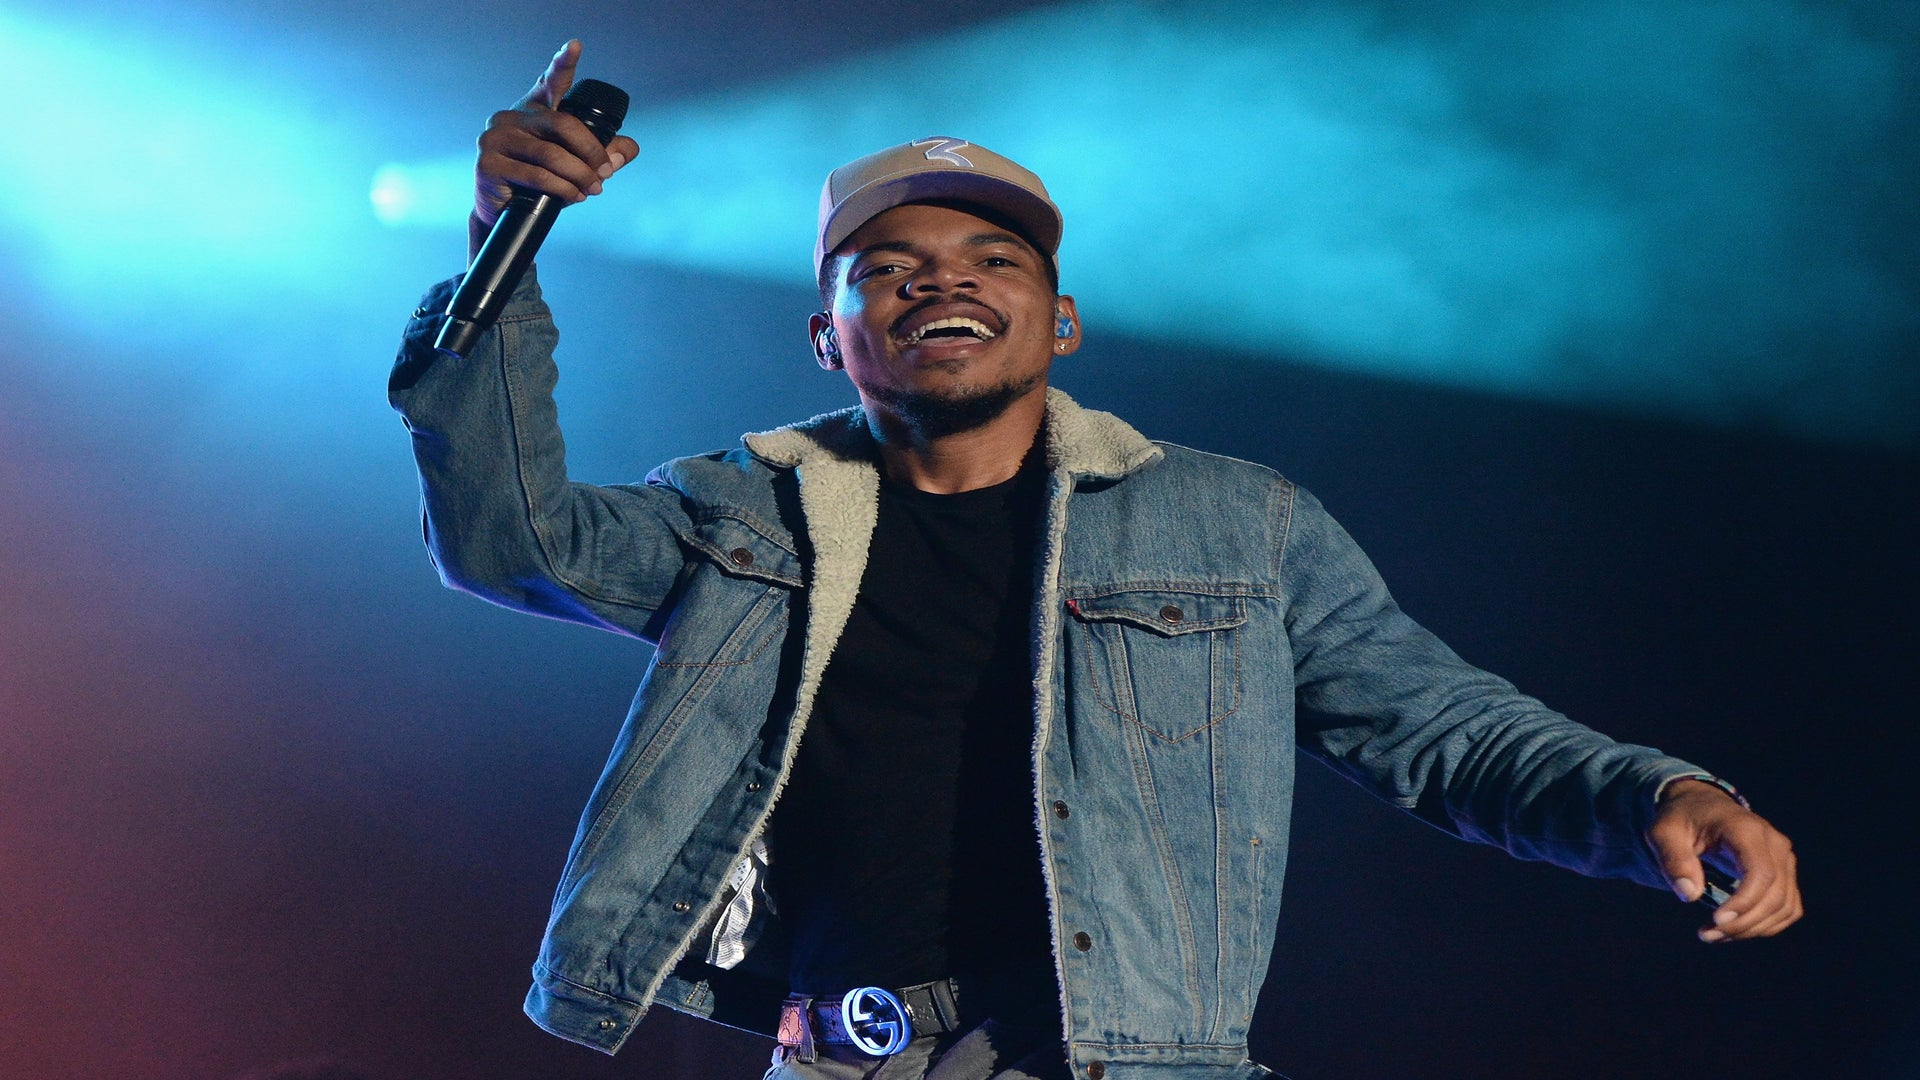 Chance The Rapper Covers Stevie Wonder's 'They Won't Go When I Go' For Tiny Desk Concert